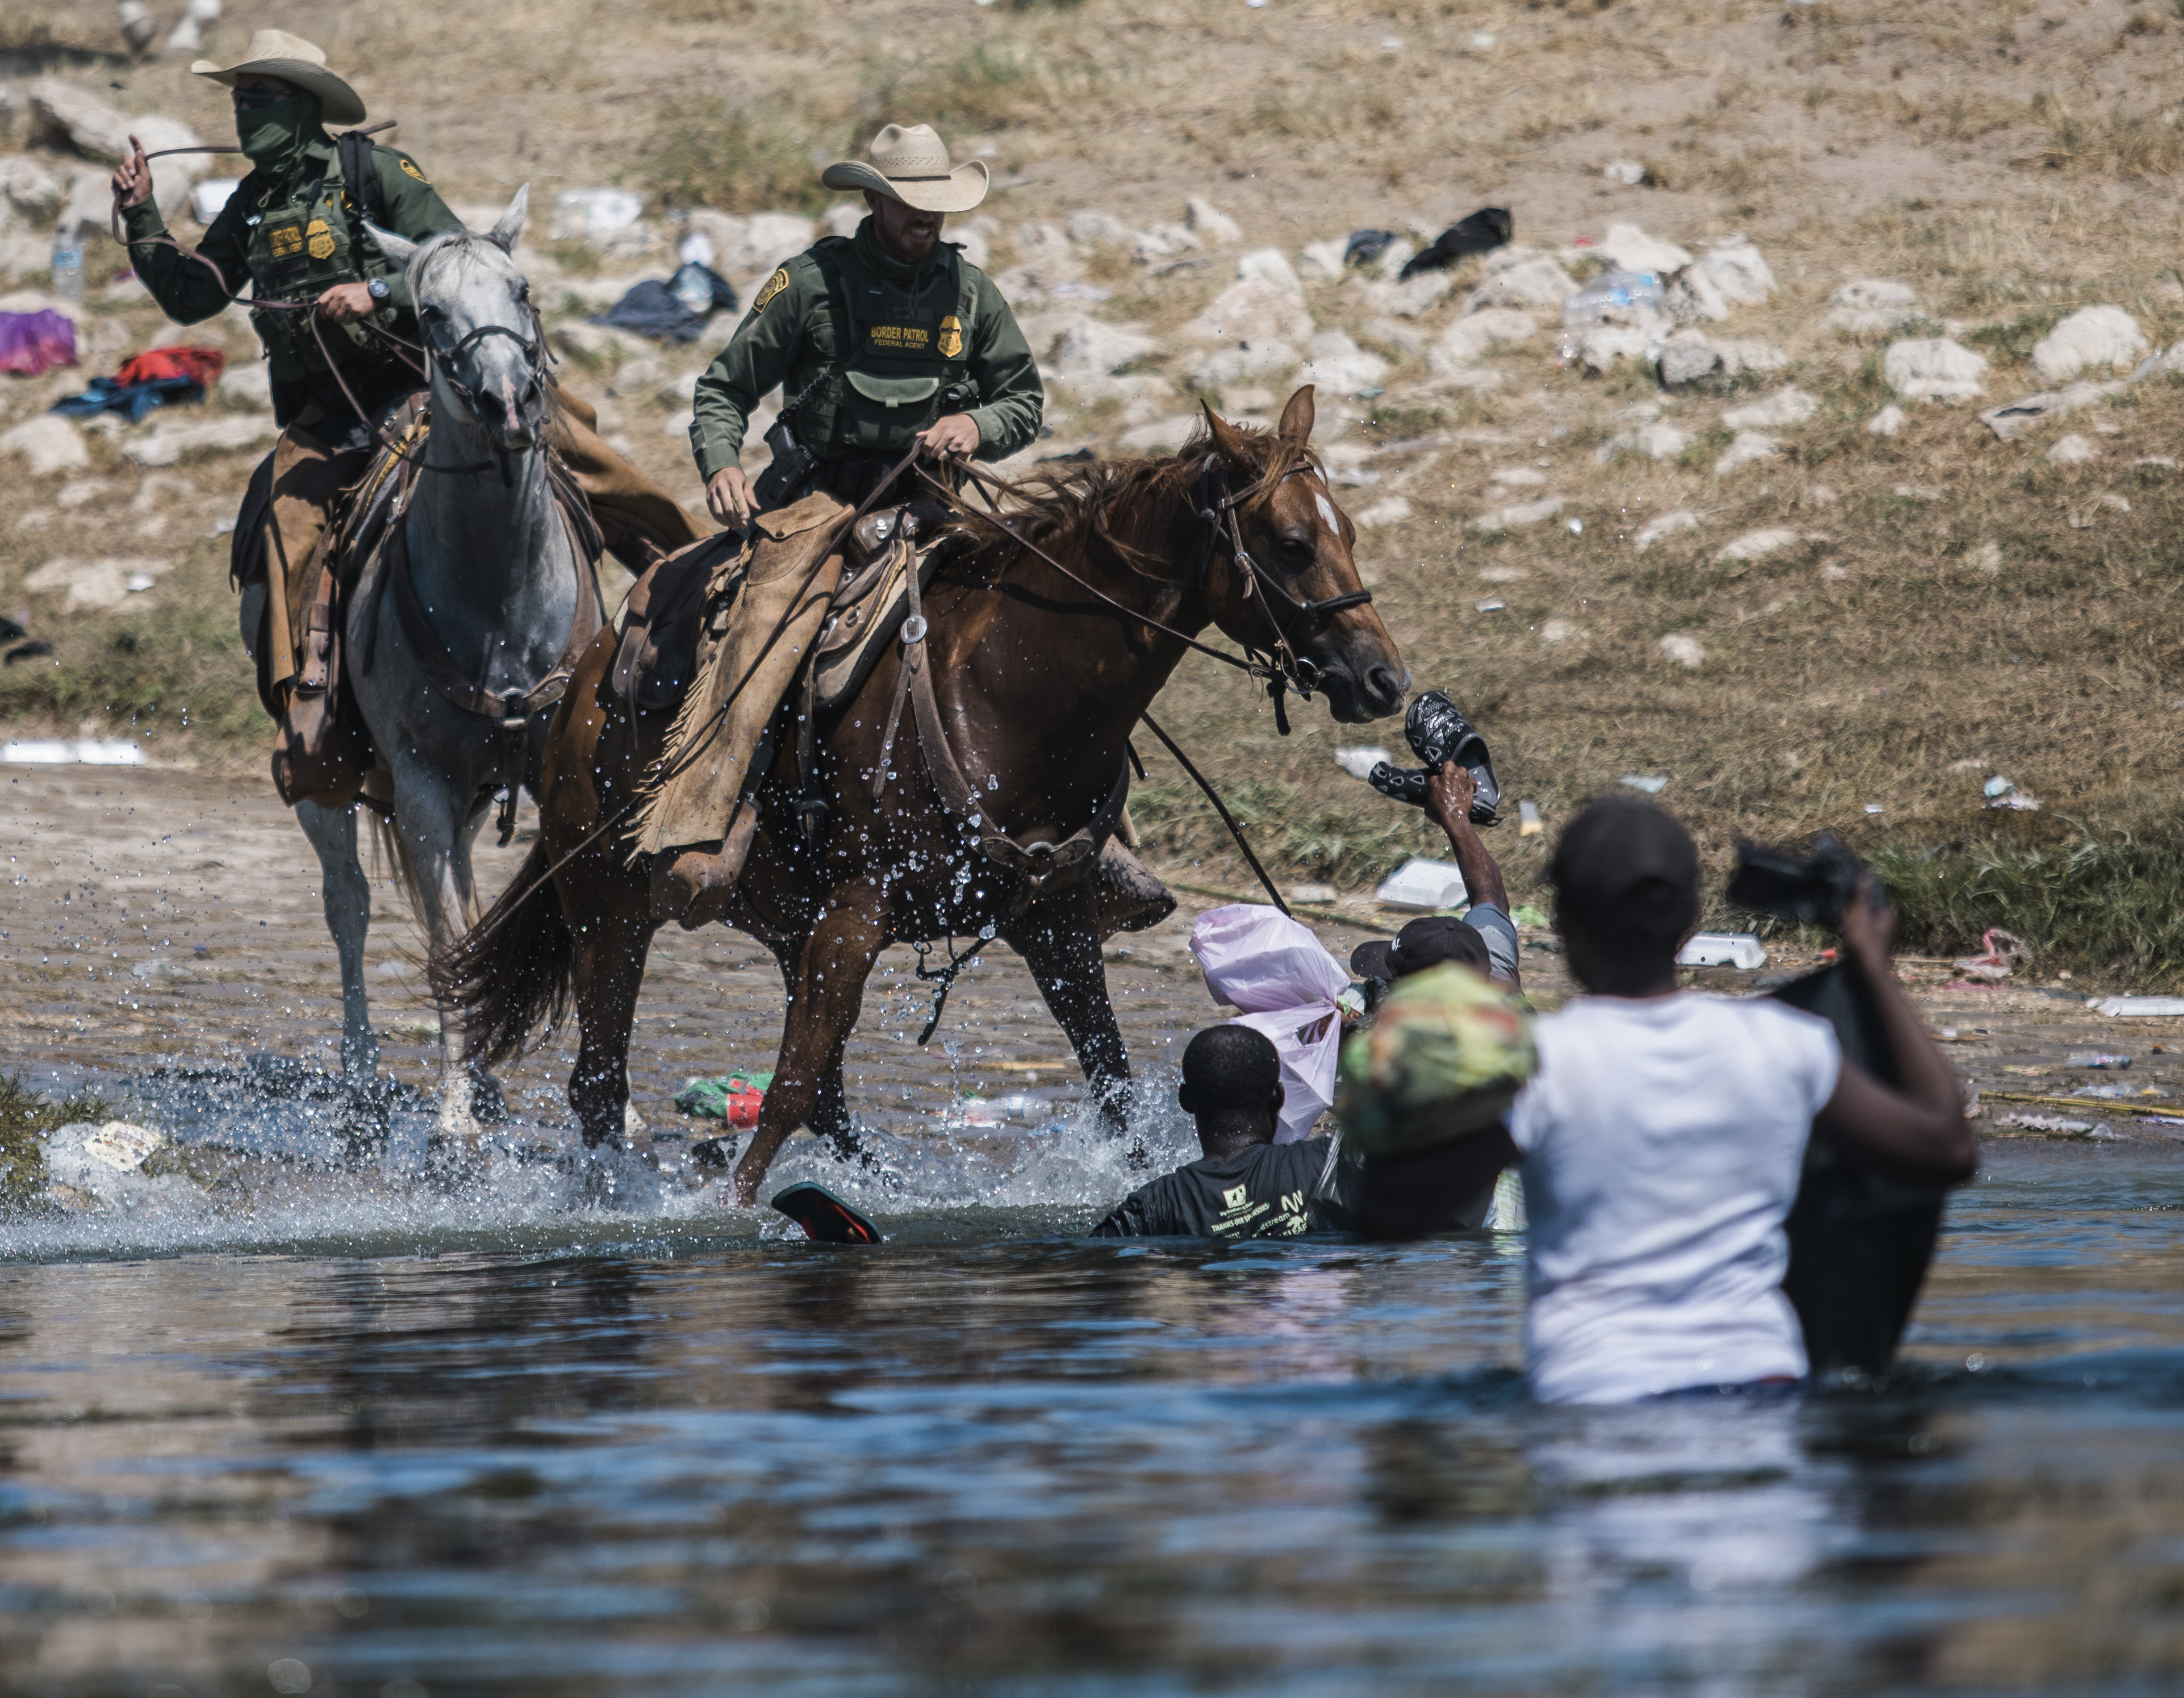 U.S. Customs and Border Protection mounted officers attempt to contain migrants as they cross the Rio Grande from Ciudad Acuña, Mexico, into Del Rio, Texas, Sunday, Sept. 19, 2021. Thousands of Haitian migrants have been arriving to Del Rio, Texas, as authorities attempt to close the border to stop the flow of migrants.